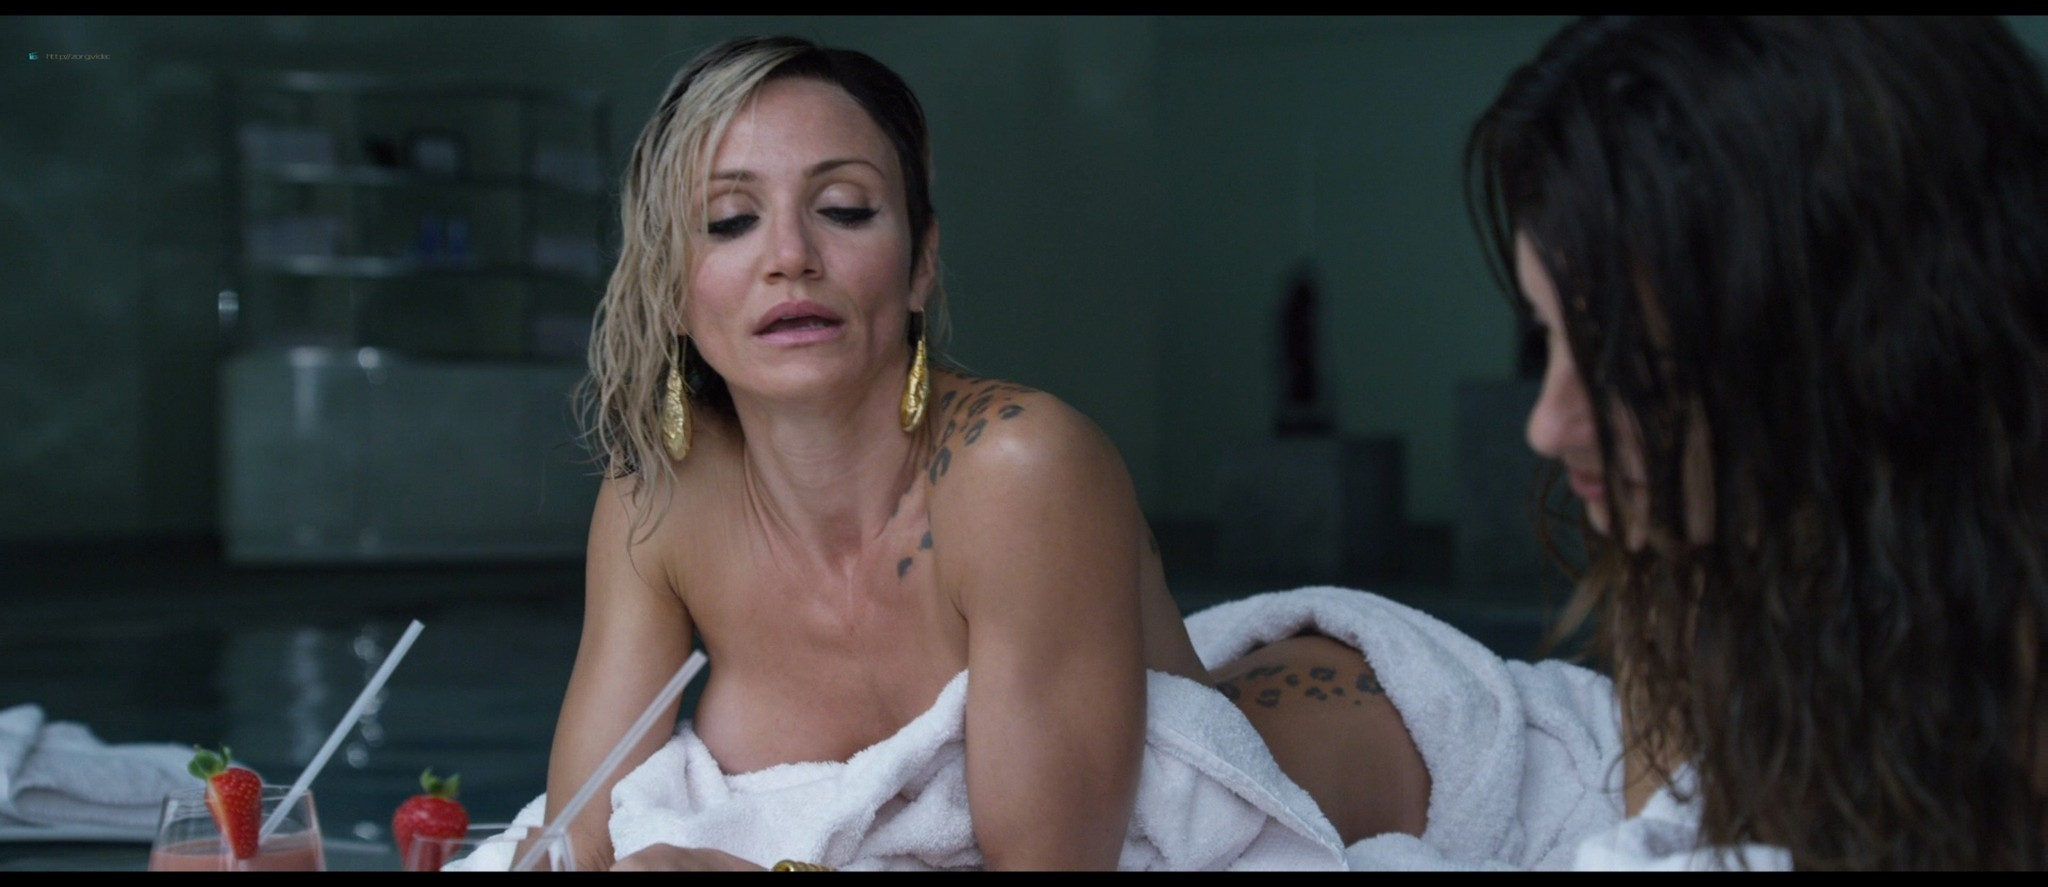 Penelope Cruz hot and Cameron Diaz hot and some sex - The Counselor (2013) HD 1080p BluRay (6)